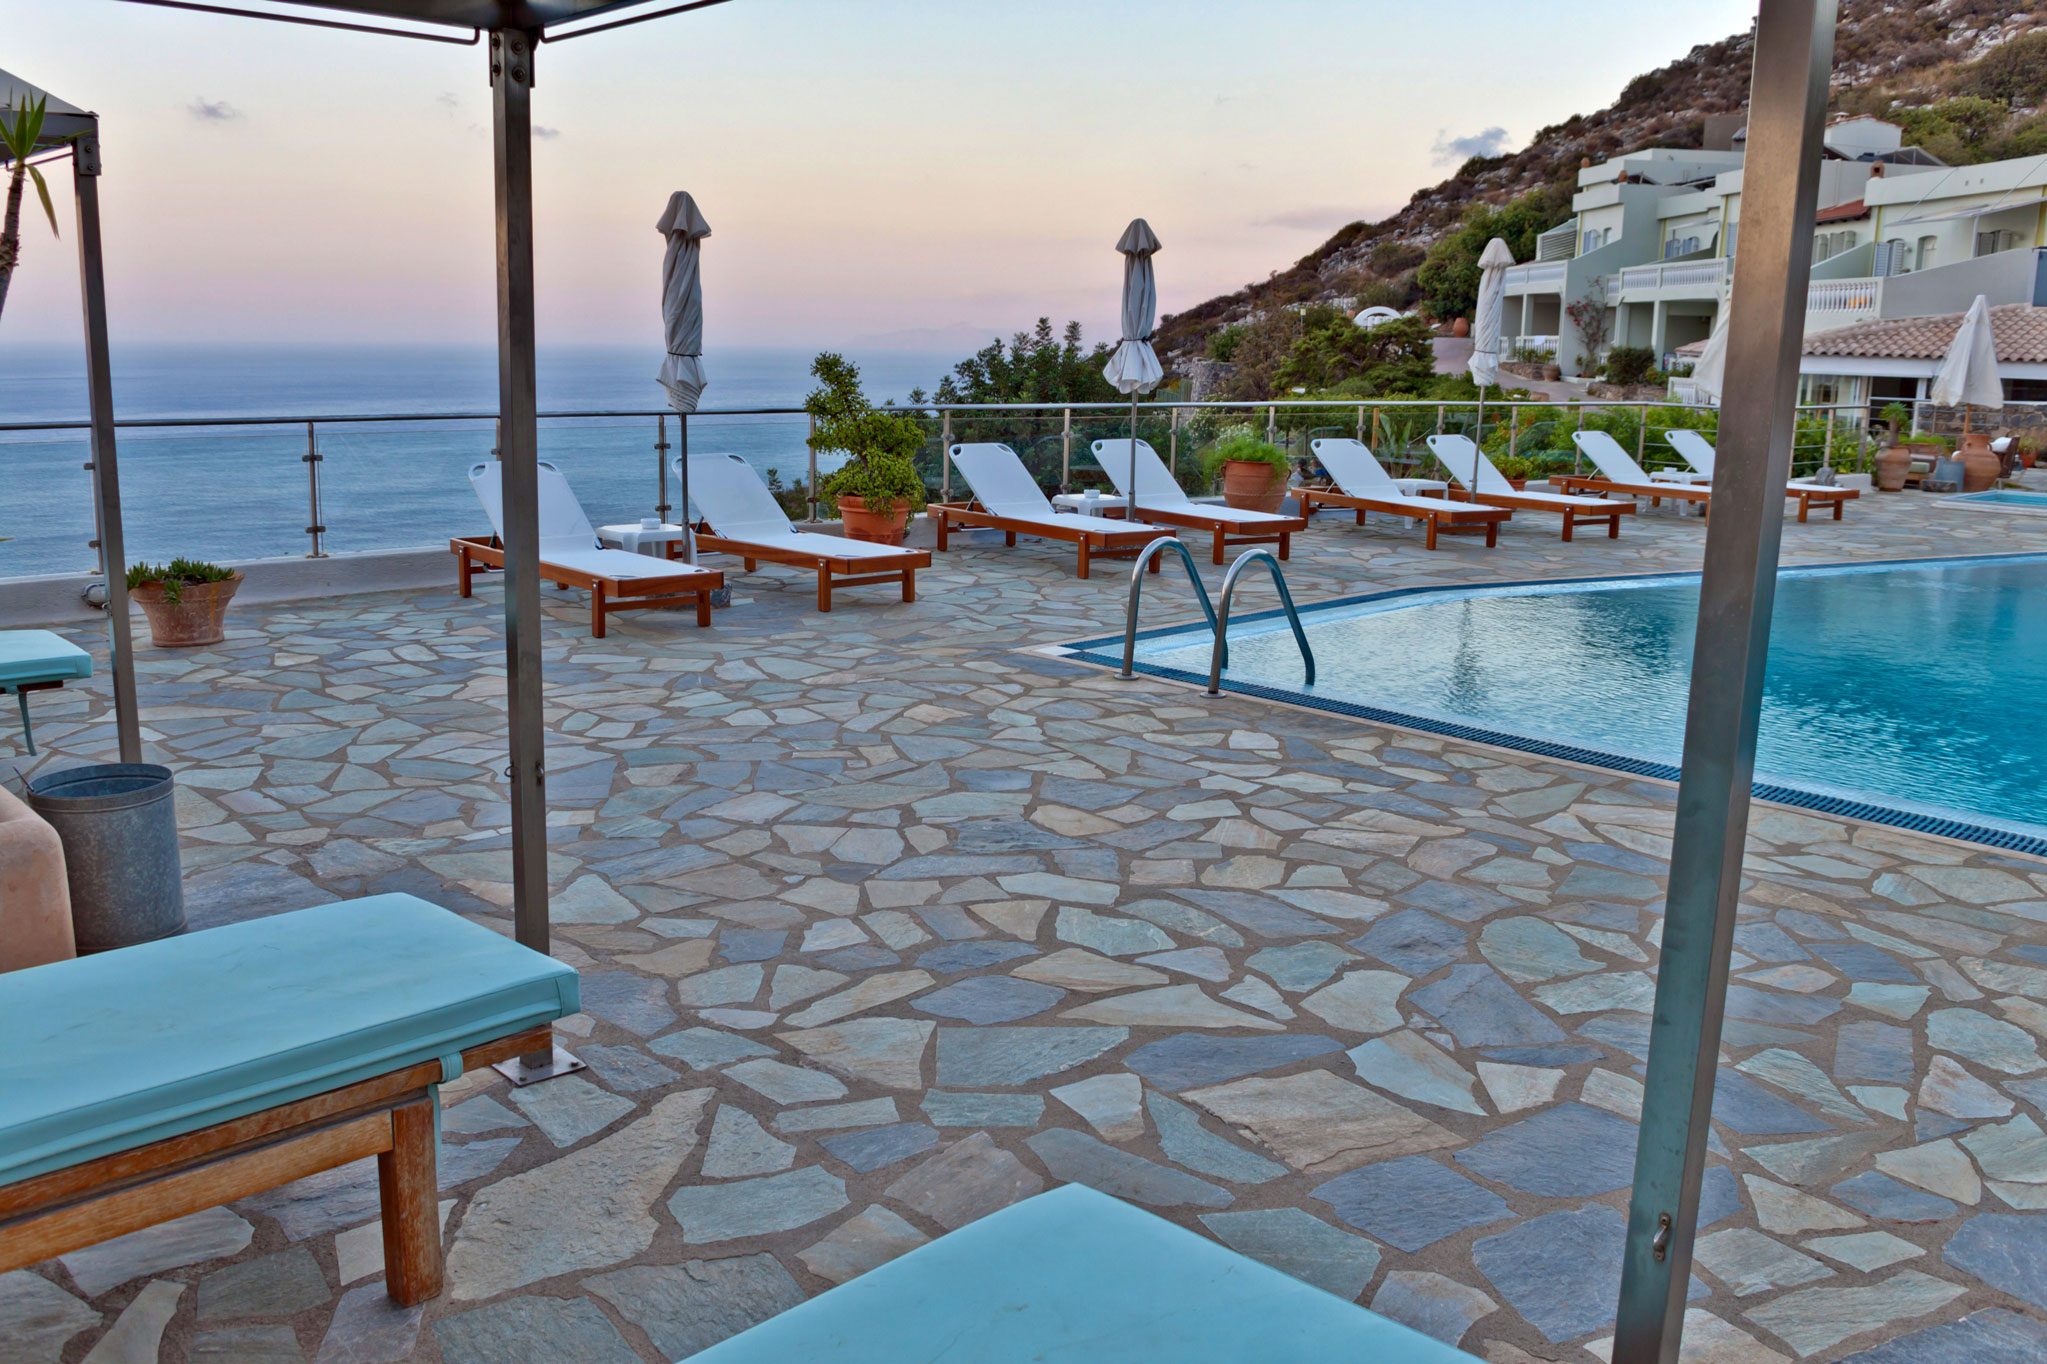 Sunbeds Sea View - Adrakos Apartments Elounda 01a